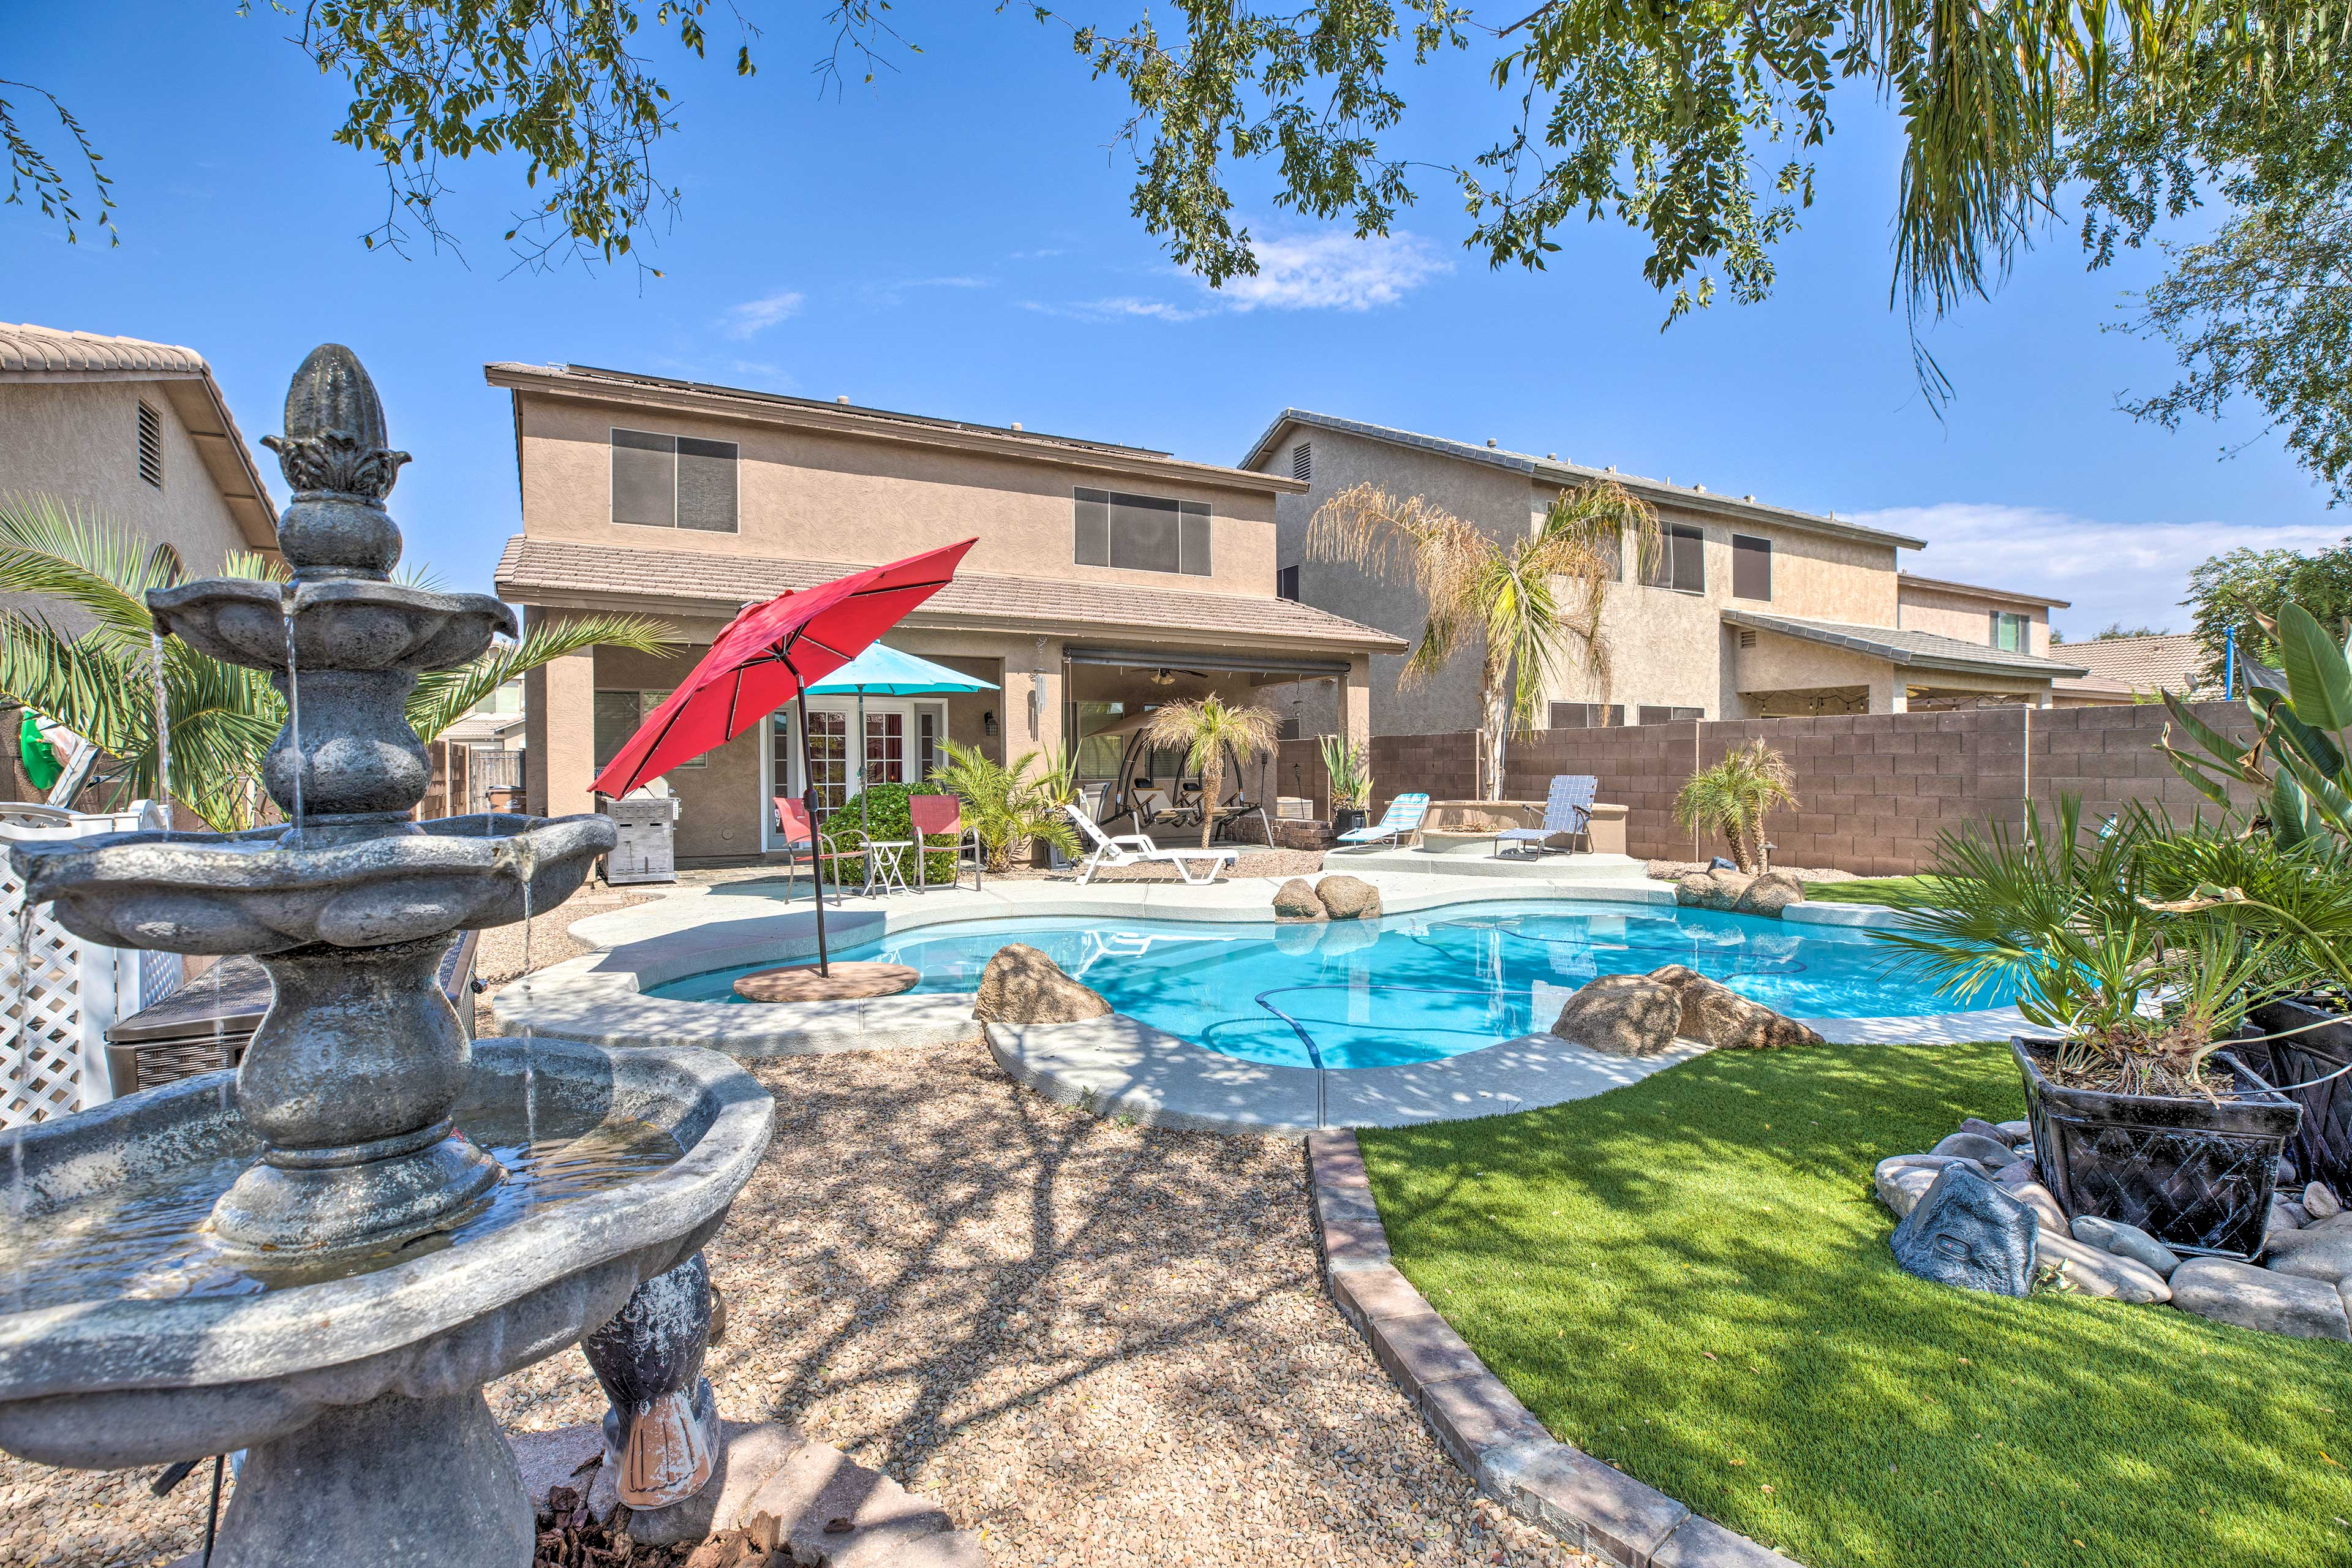 Experience the private backyard with a putting green and full pool!